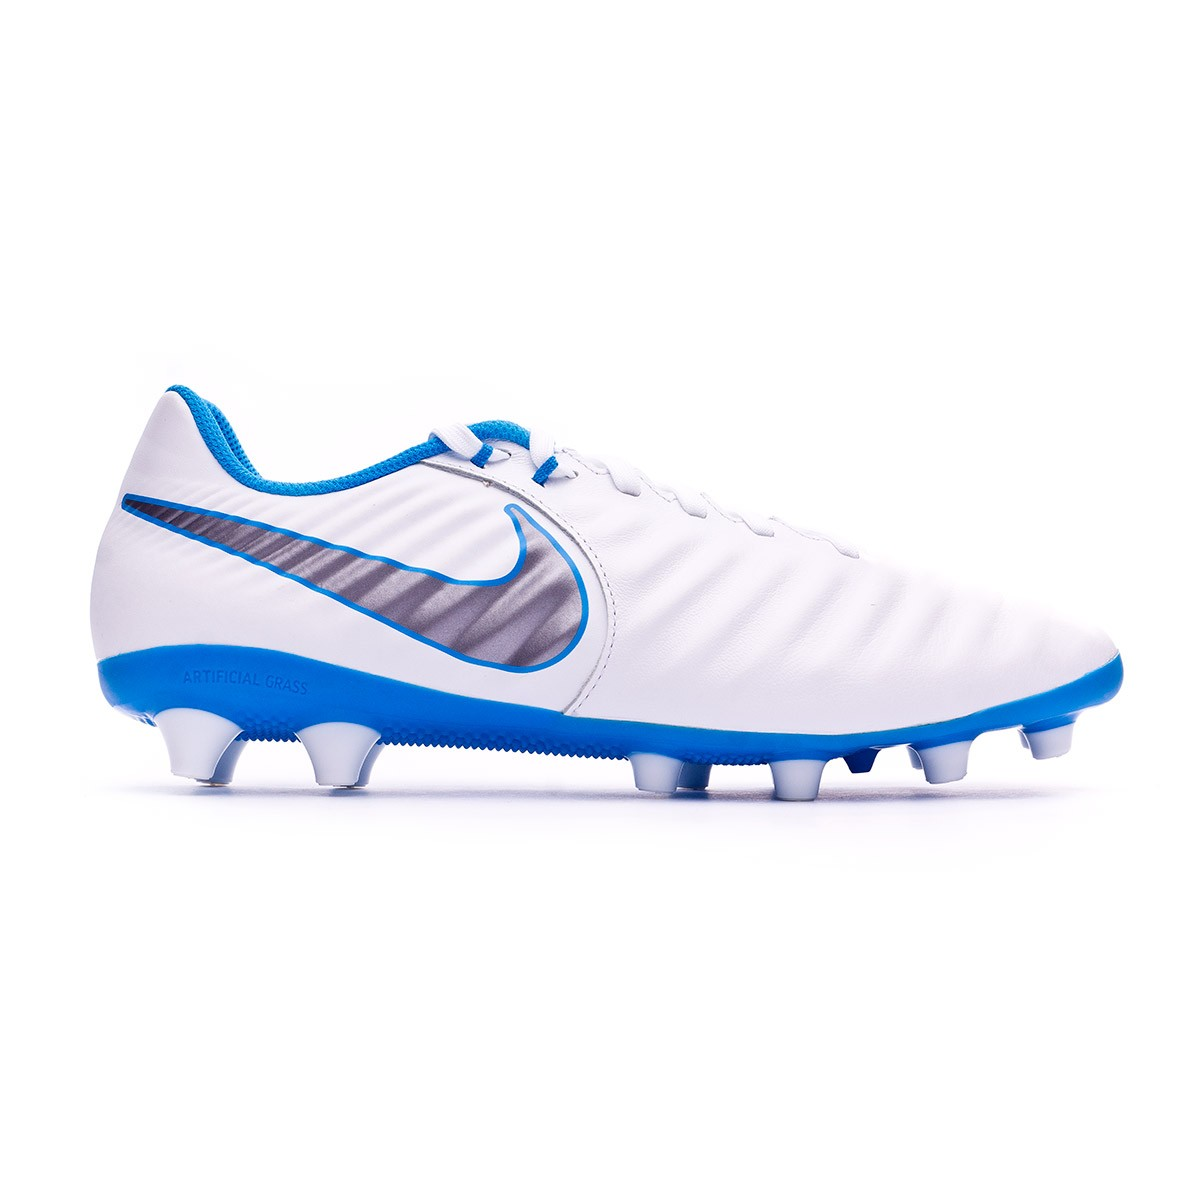 bc77a8a30cc6 Football Boots Nike Tiempo Legend VII Academy AG-Pro White-Metallic cool  grey-Blue hero - Football store Fútbol Emotion